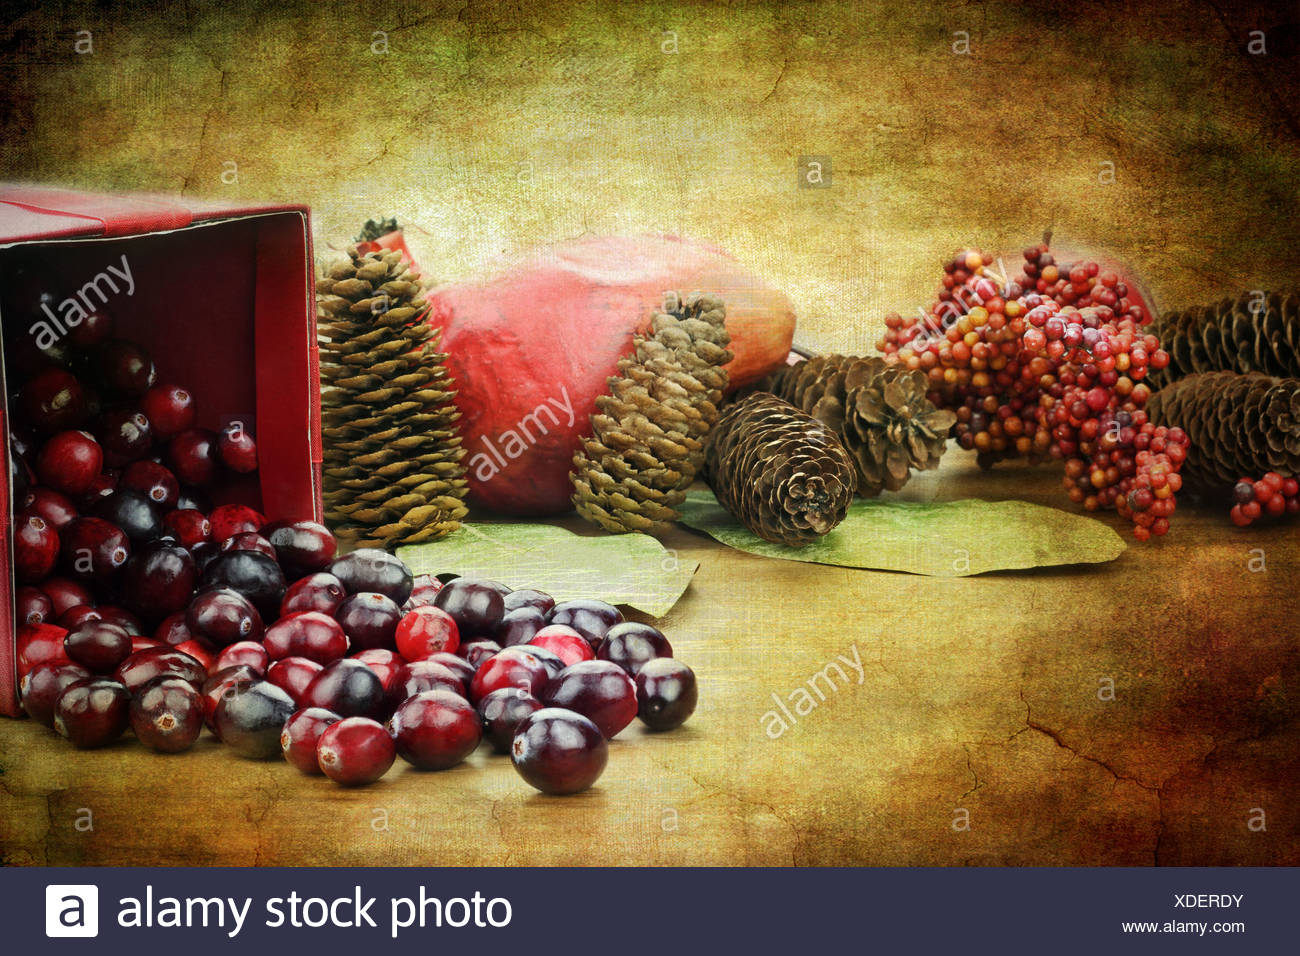 Photo based illustration of a red Christmas box spilling out fresh cranberries with pine cones an pomegranates in the background - Stock Image